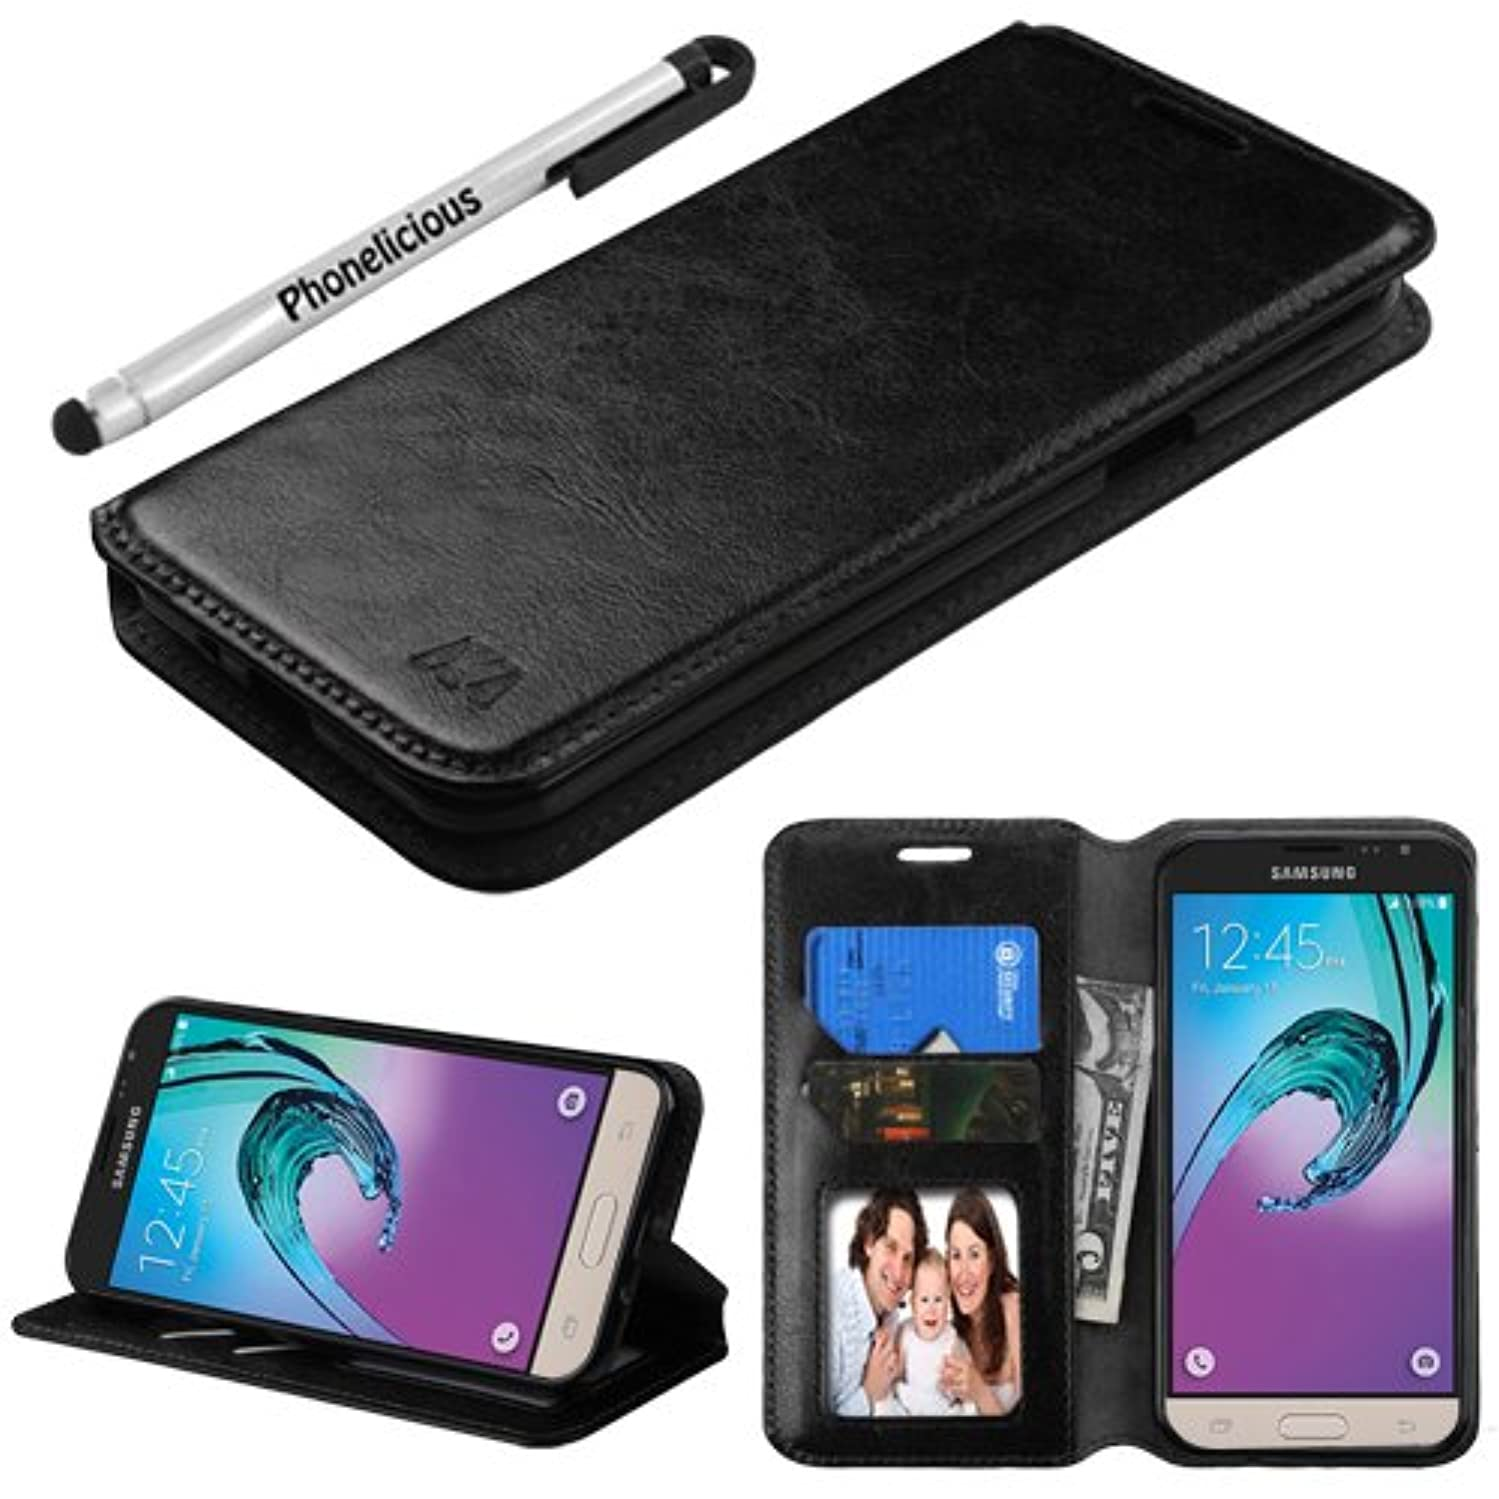 GALAXY SKY Case, Phonelicious SAMSUNG GALAXY SKY (S320VL) Wallet PU Leather Case Premium Pouch ID Credit Card Cover Flip Folio Book Style with Money Slot +Pen (BLACK FOLDSTAND)